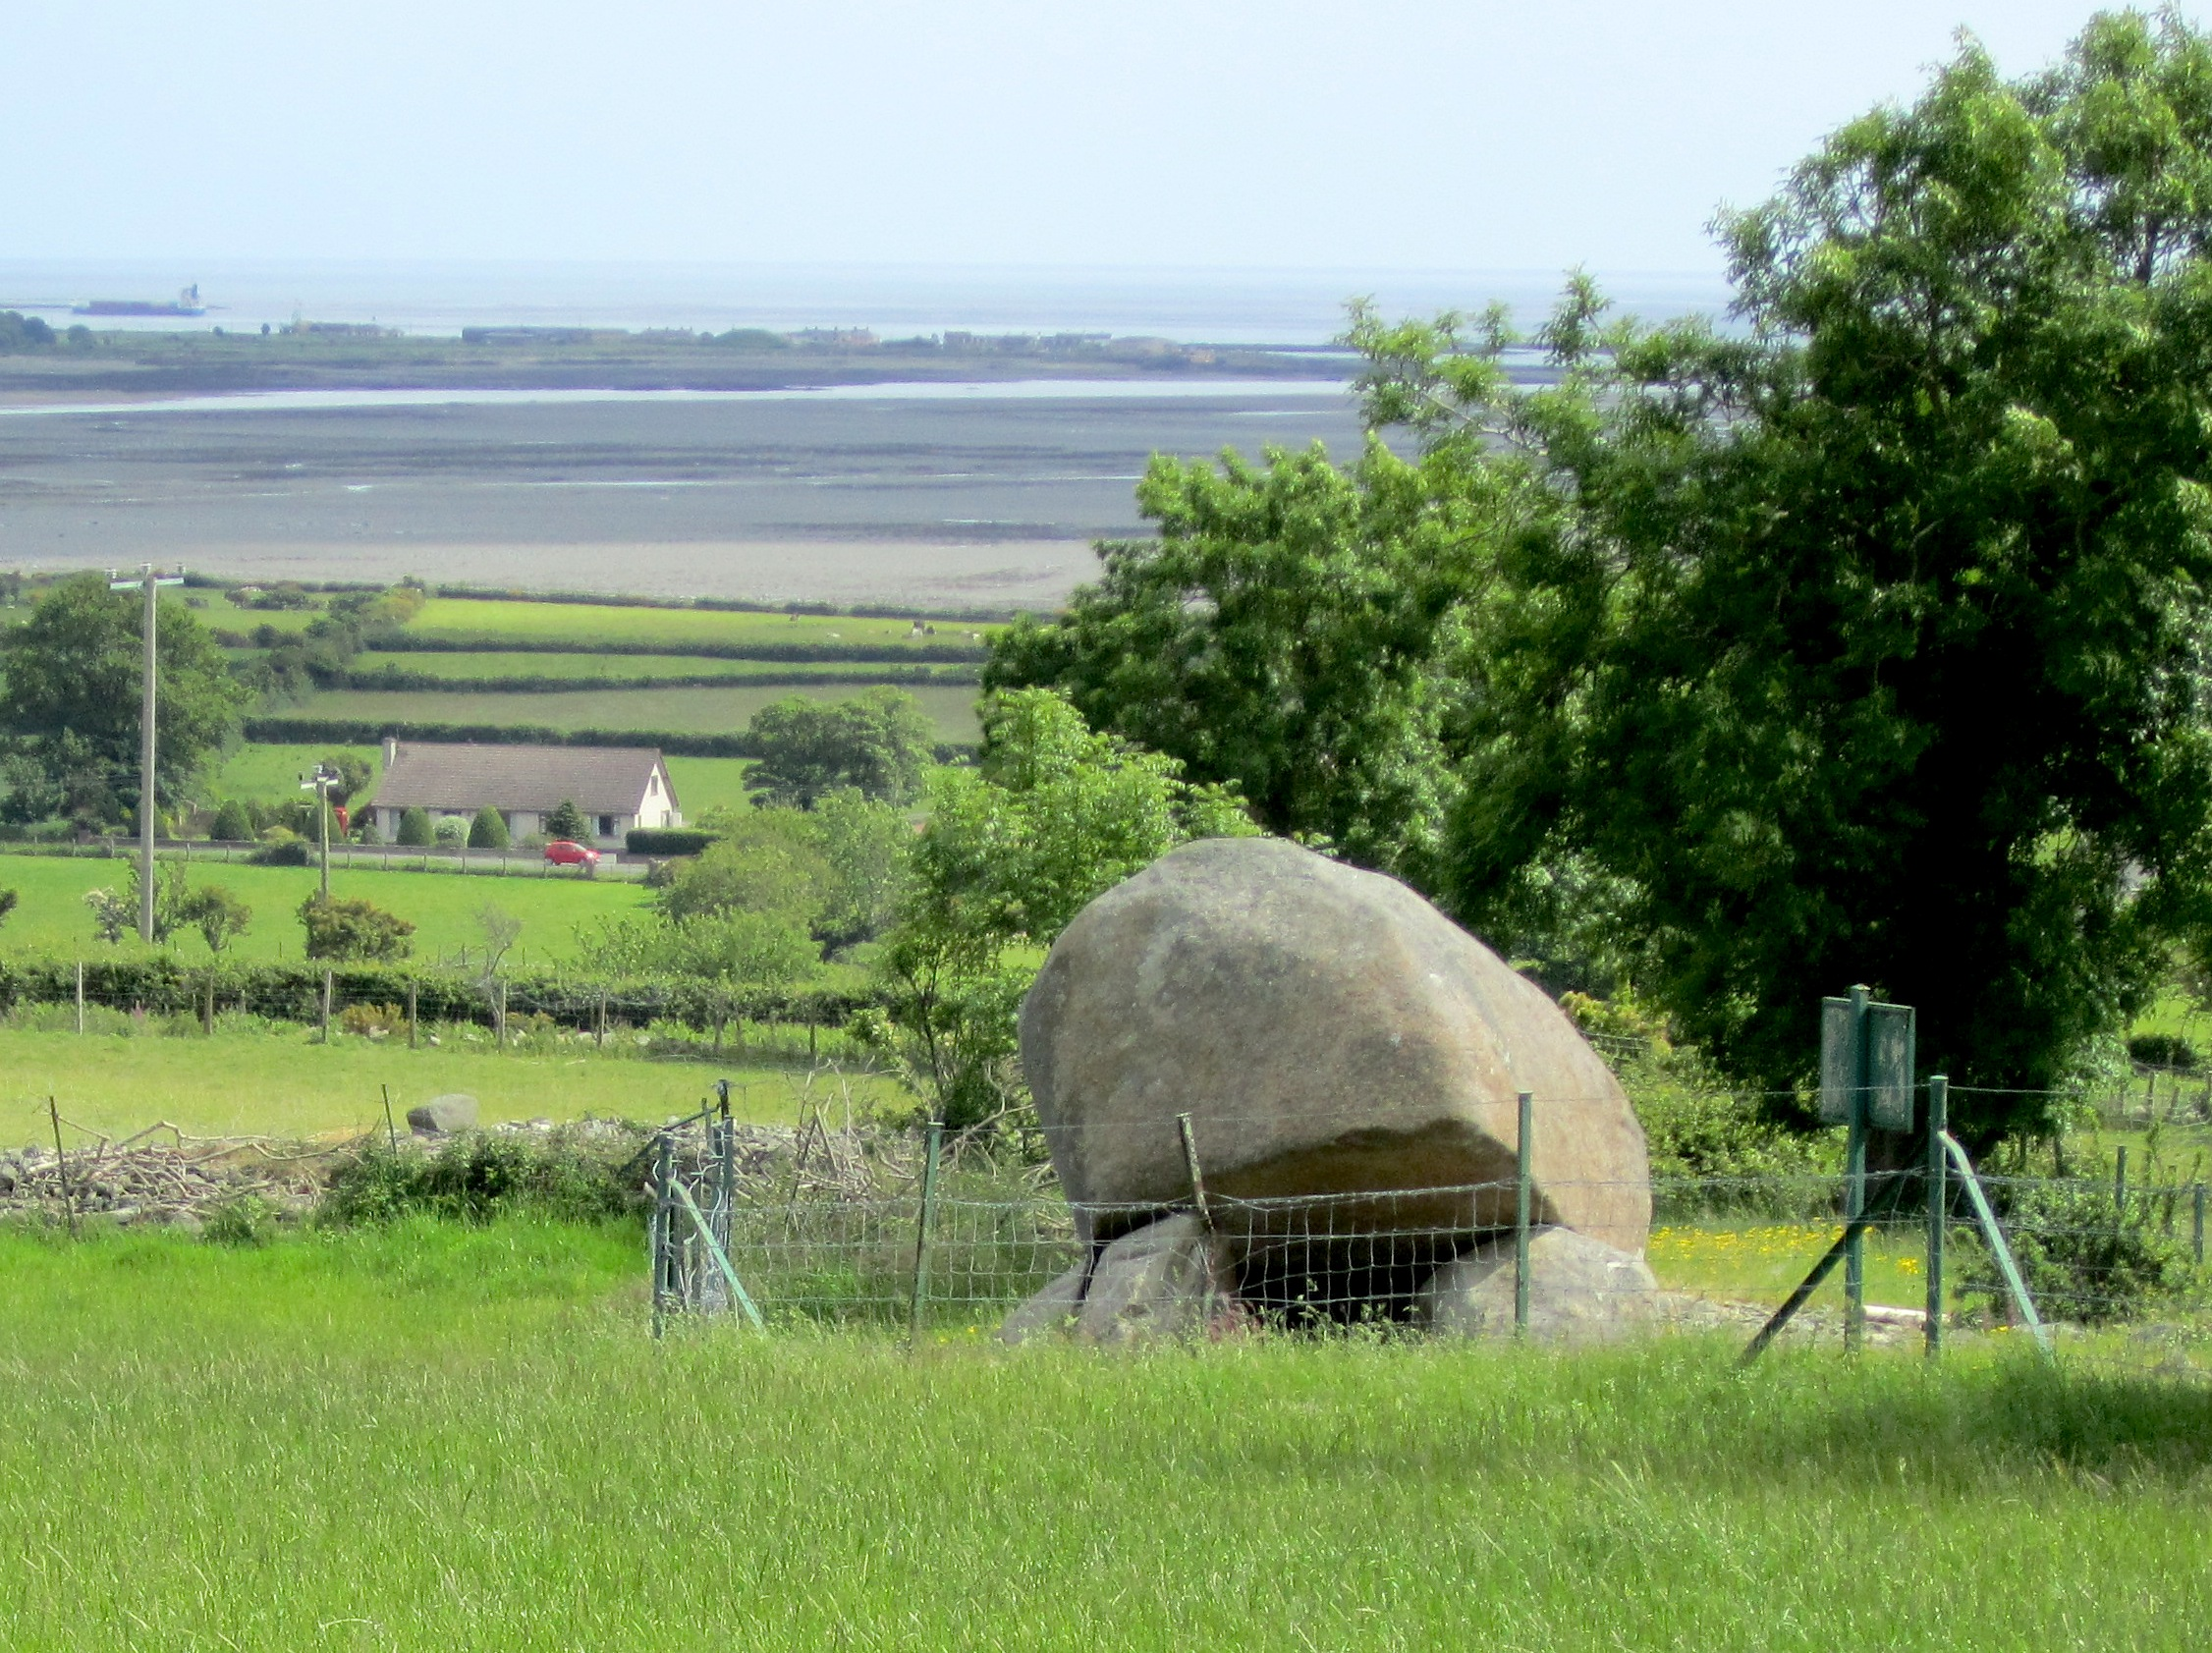 This dolmen is above the Irish Sea